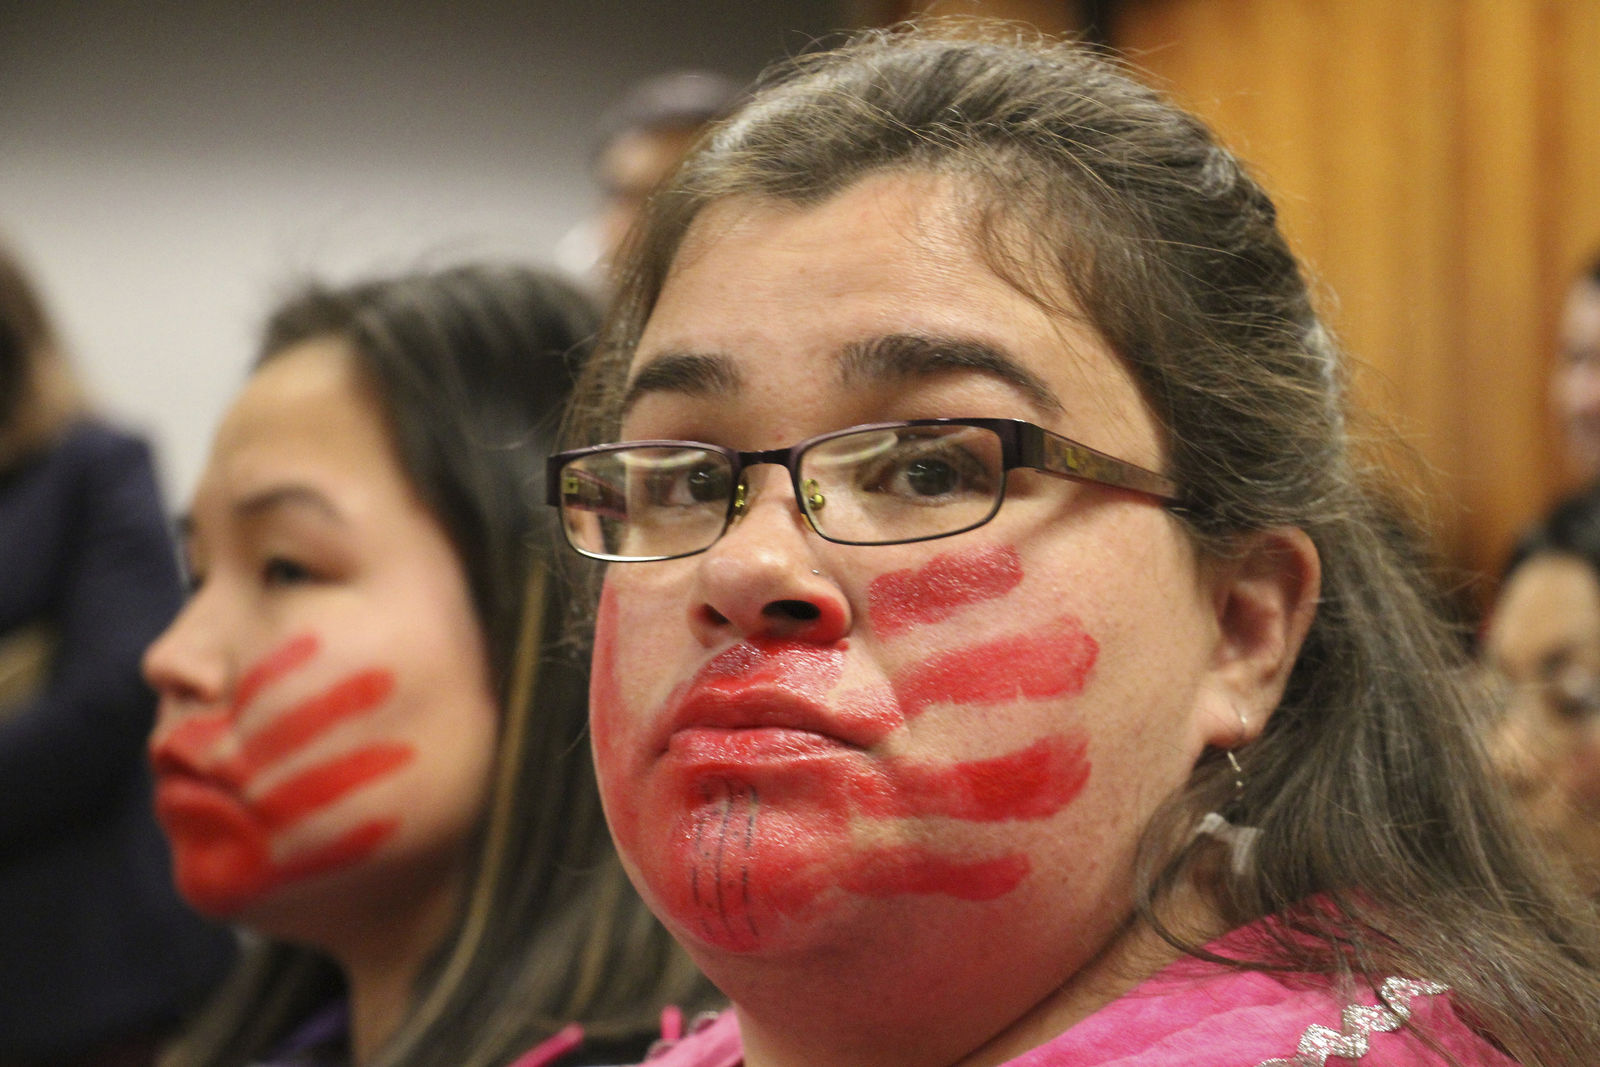 Joanne Sakar, left, and Natasha Gamache hold a silent protest in a courtroom, to highlight what Gamache says is Alaska's history of not properly investigating, prosecuting or sentencing perpetrators of crimes against Alaska Native women, in Anchorage, Alaska, Monday, Oct. 21, 2019. They attended the arraignment for Brian Steven Smith, who faces 14 charges in the deaths of two Alaska Native women. The red hands painted on their faces represents the silencing of indigenous women. (AP Photo/Mark Thiessen)